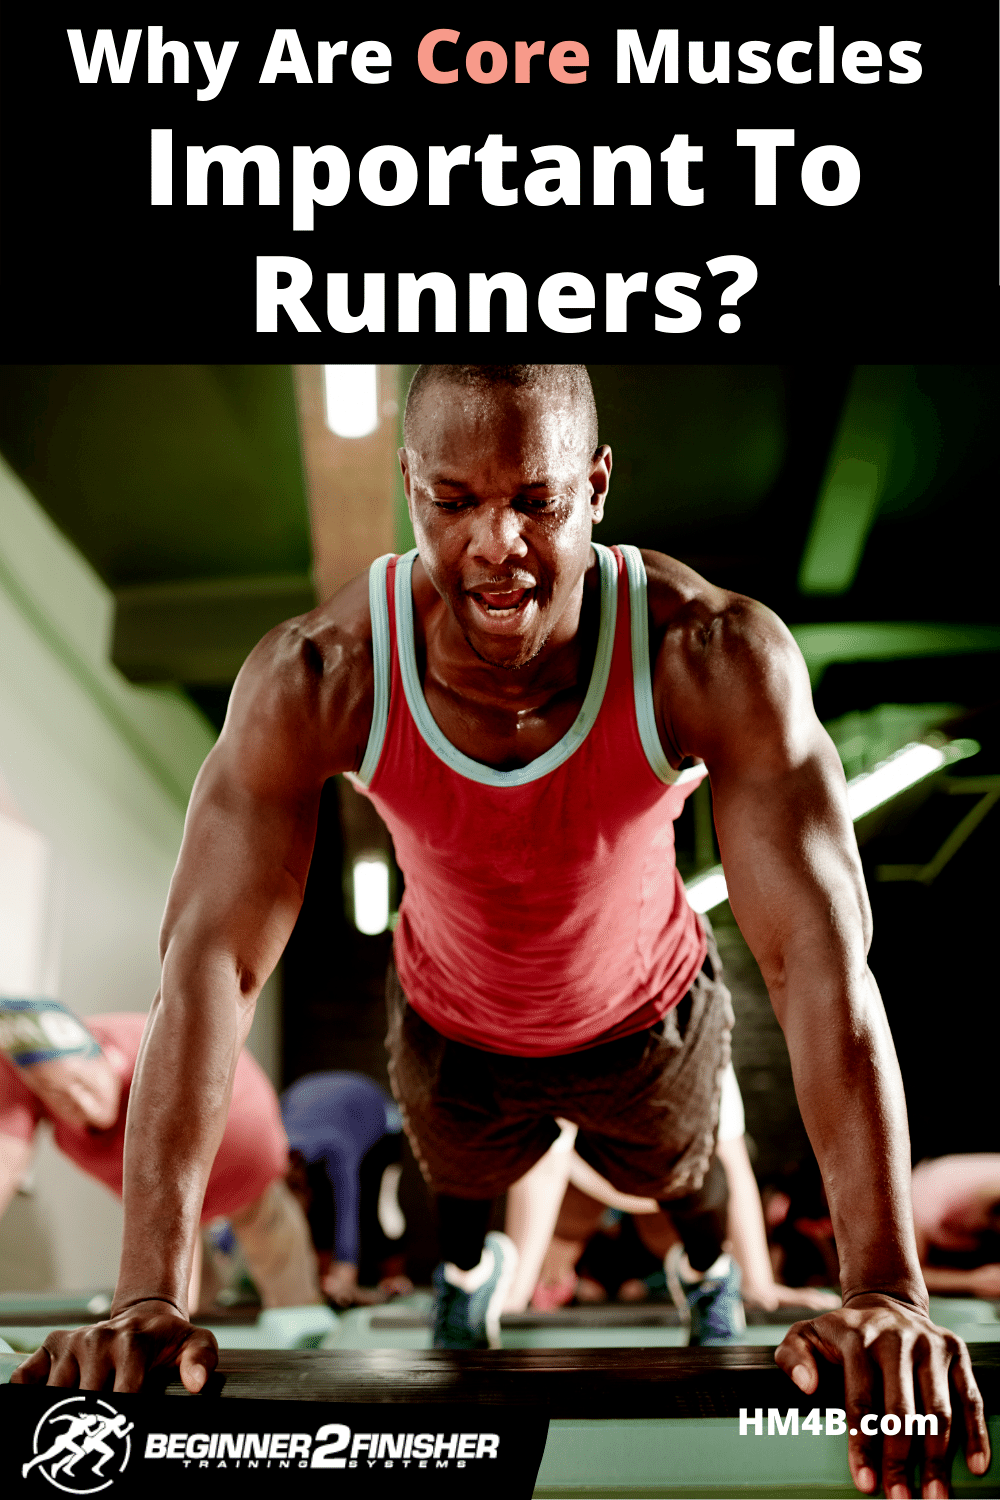 Why Are Core Muscles Important To Runners?